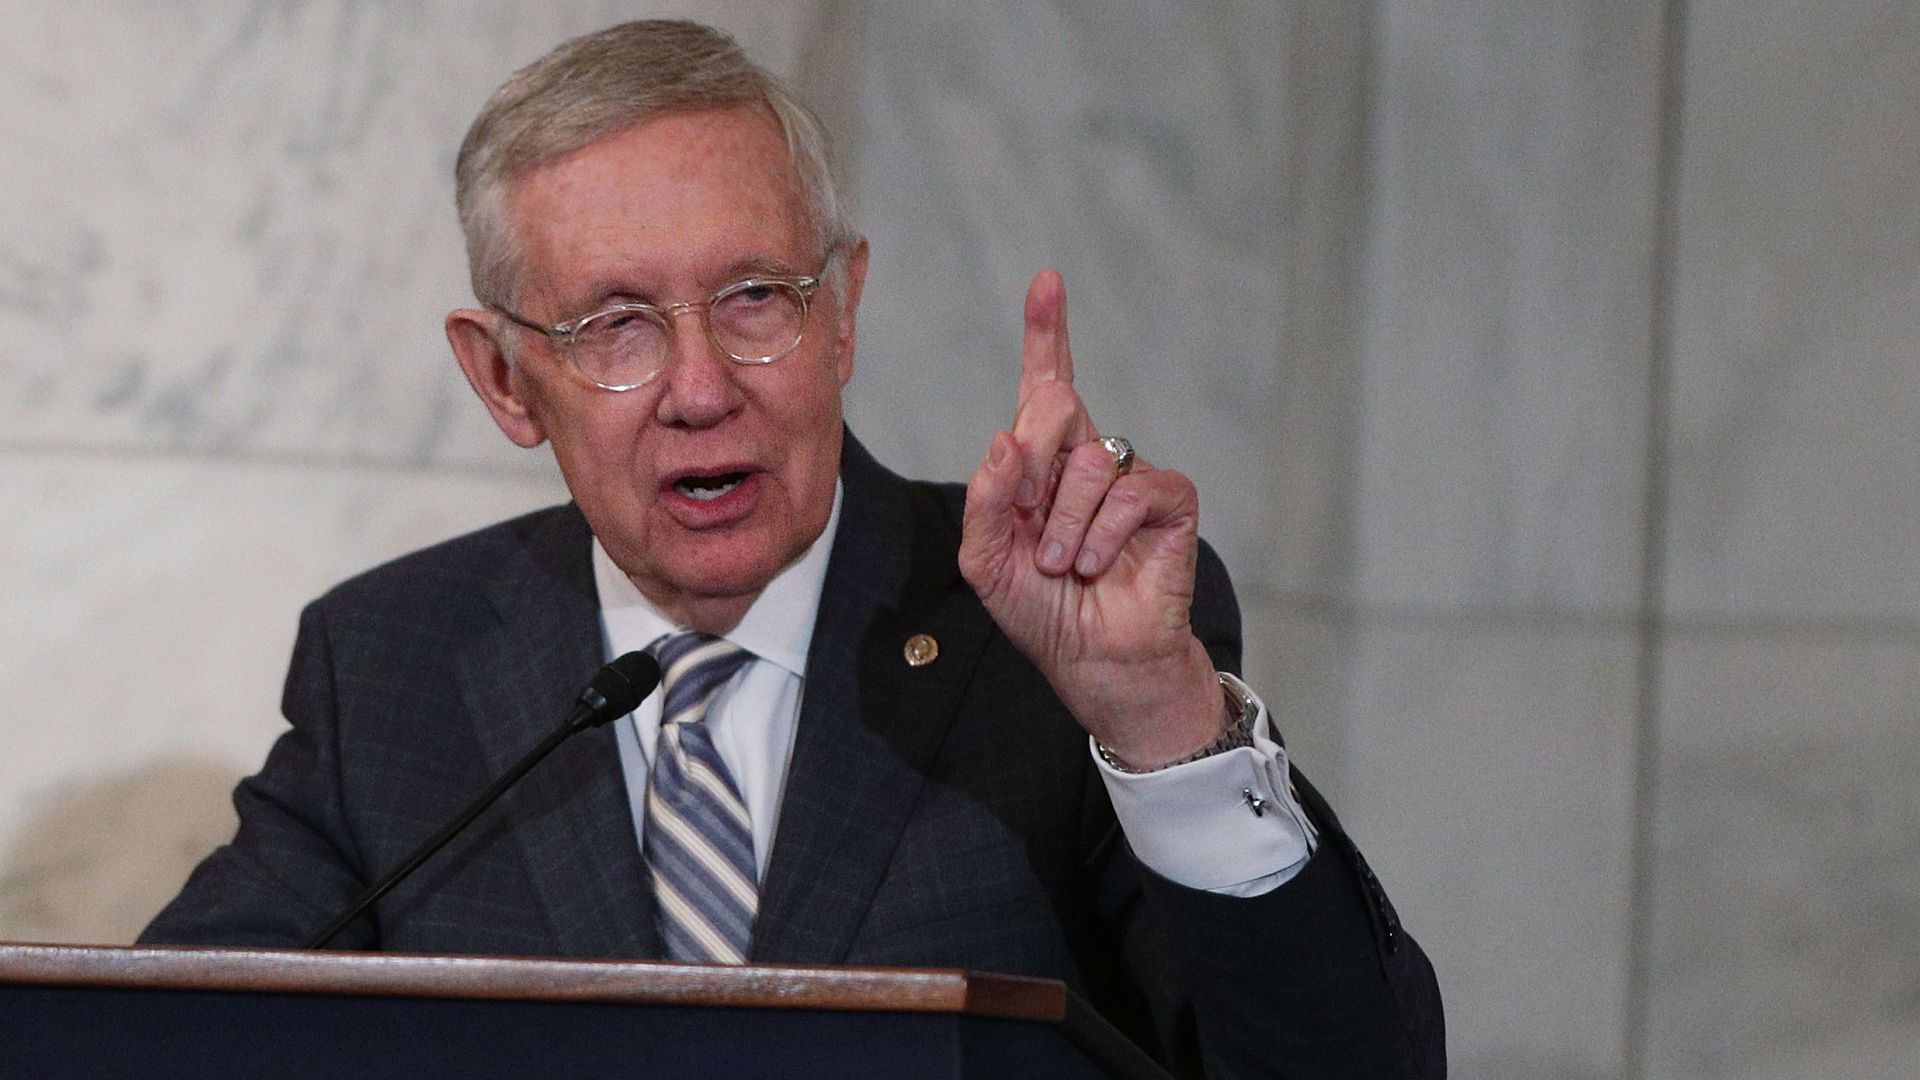 Harry Reid says Democrats should end the filibuster to take on climate change